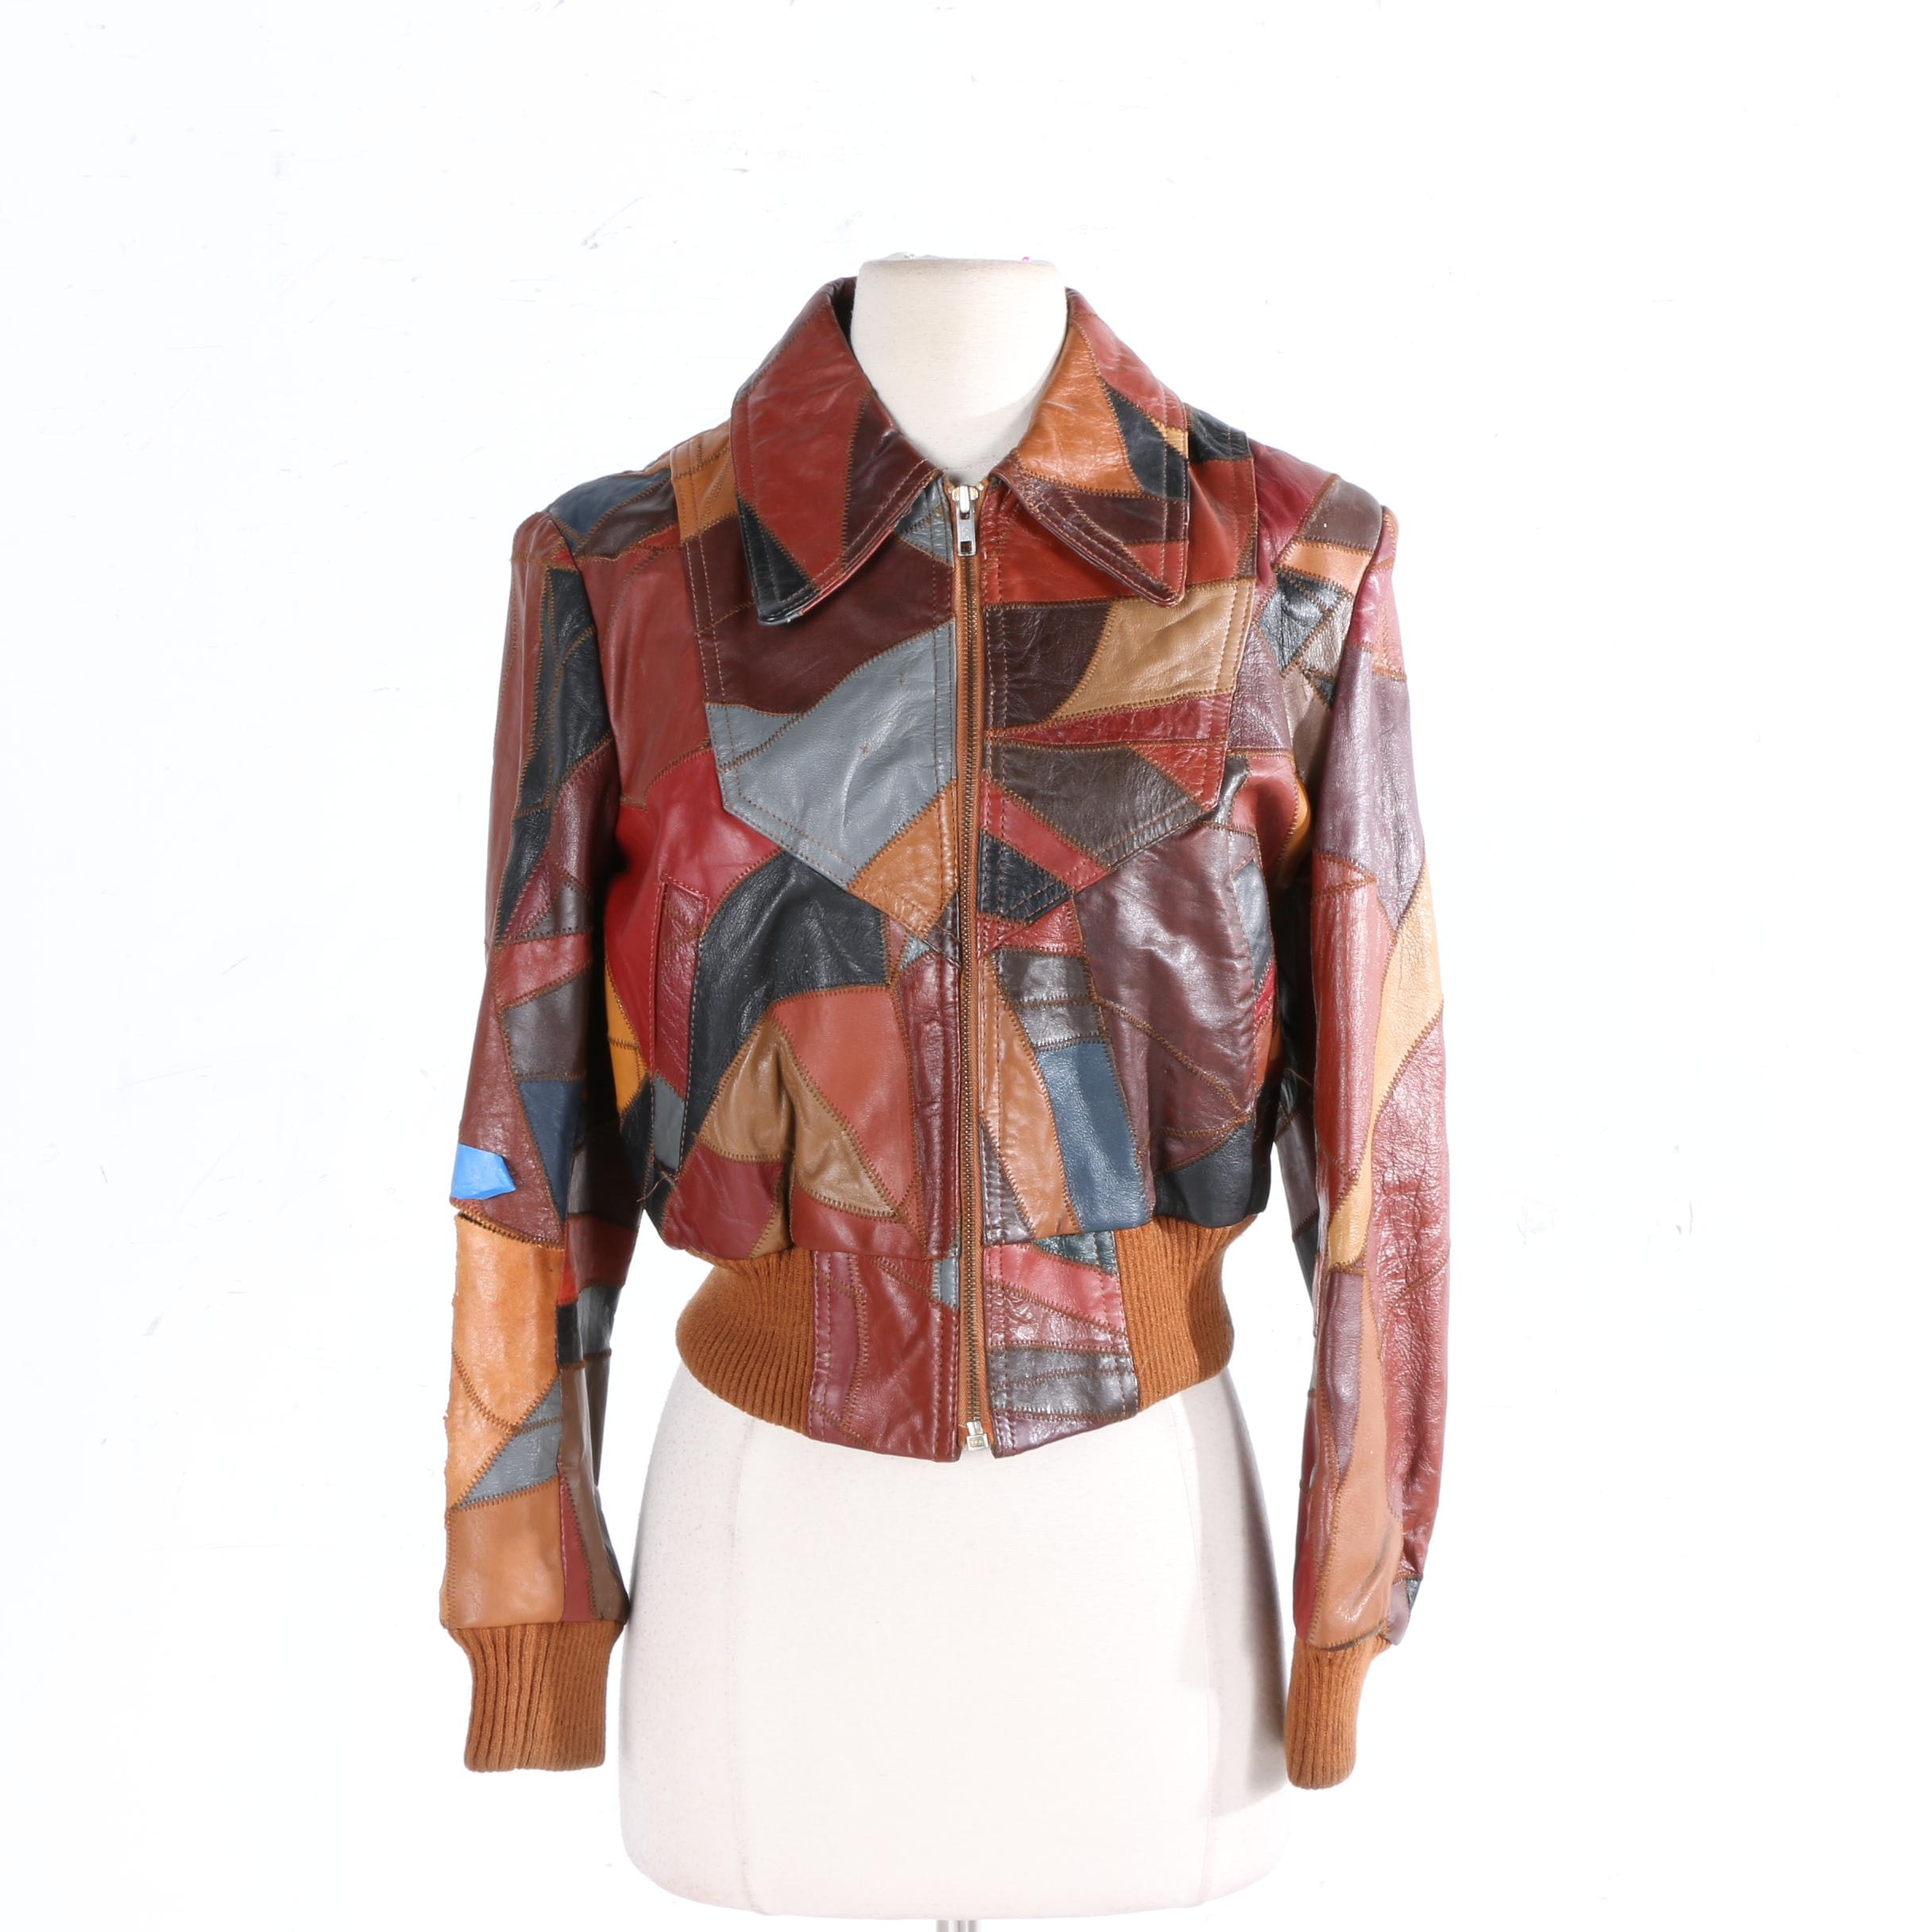 Women's Vintage Patched Leather Jacket